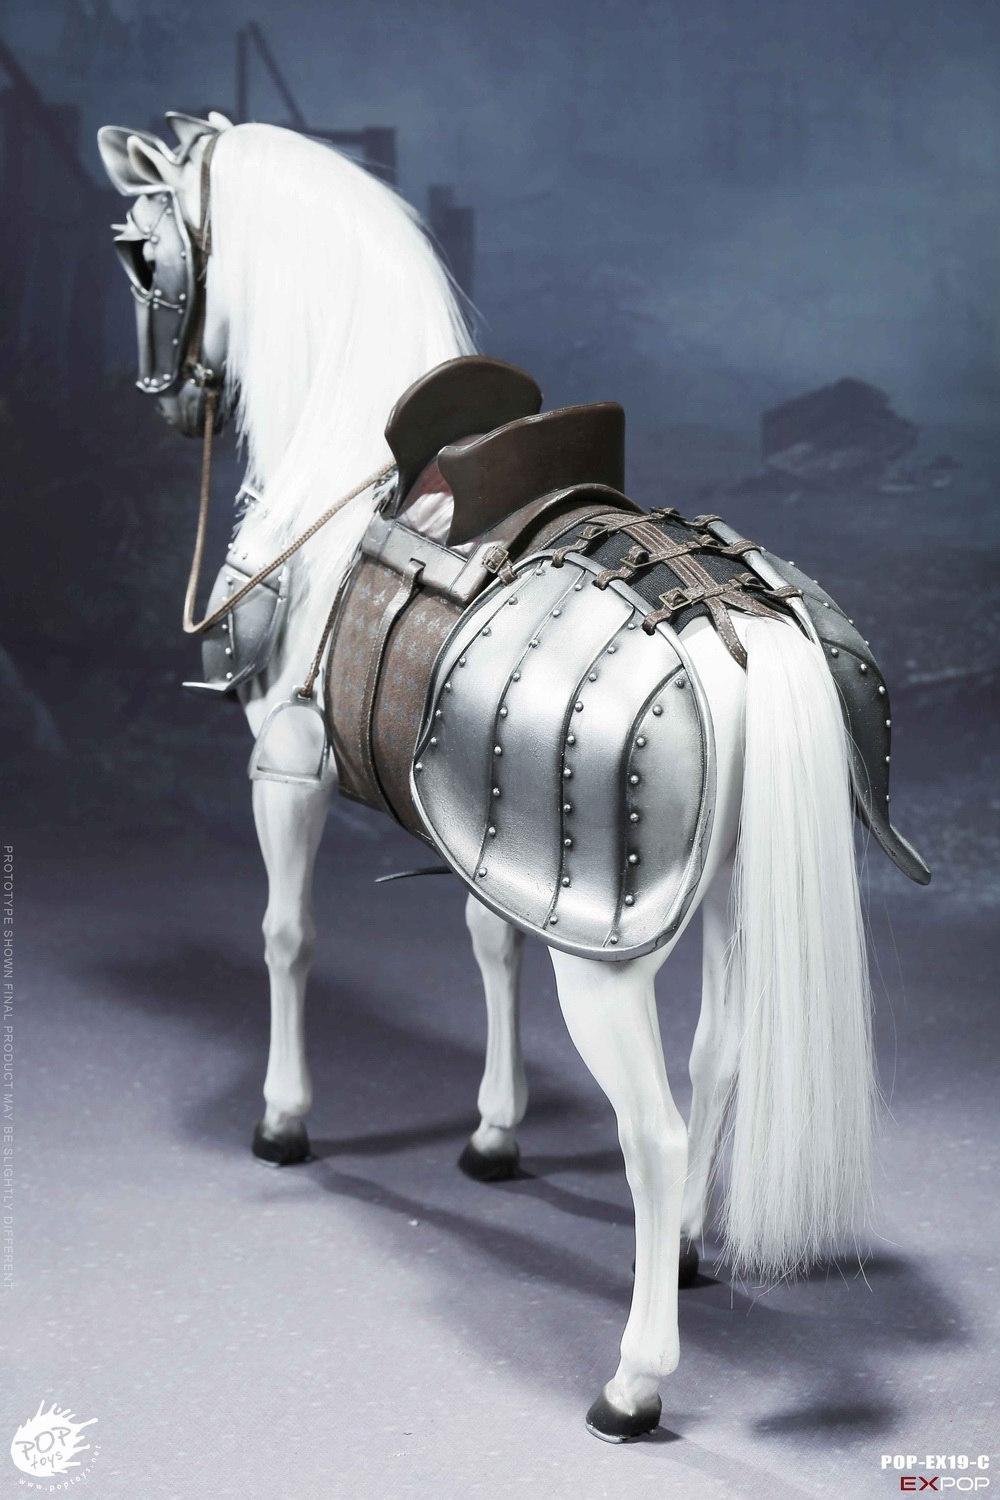 knight - NEW PRODUCT: POPTOYS New Products: 1/6 St. Knights - Assault Edition & Triumph Edition & Iron Armor (POP-EX19 ABC) 16481411